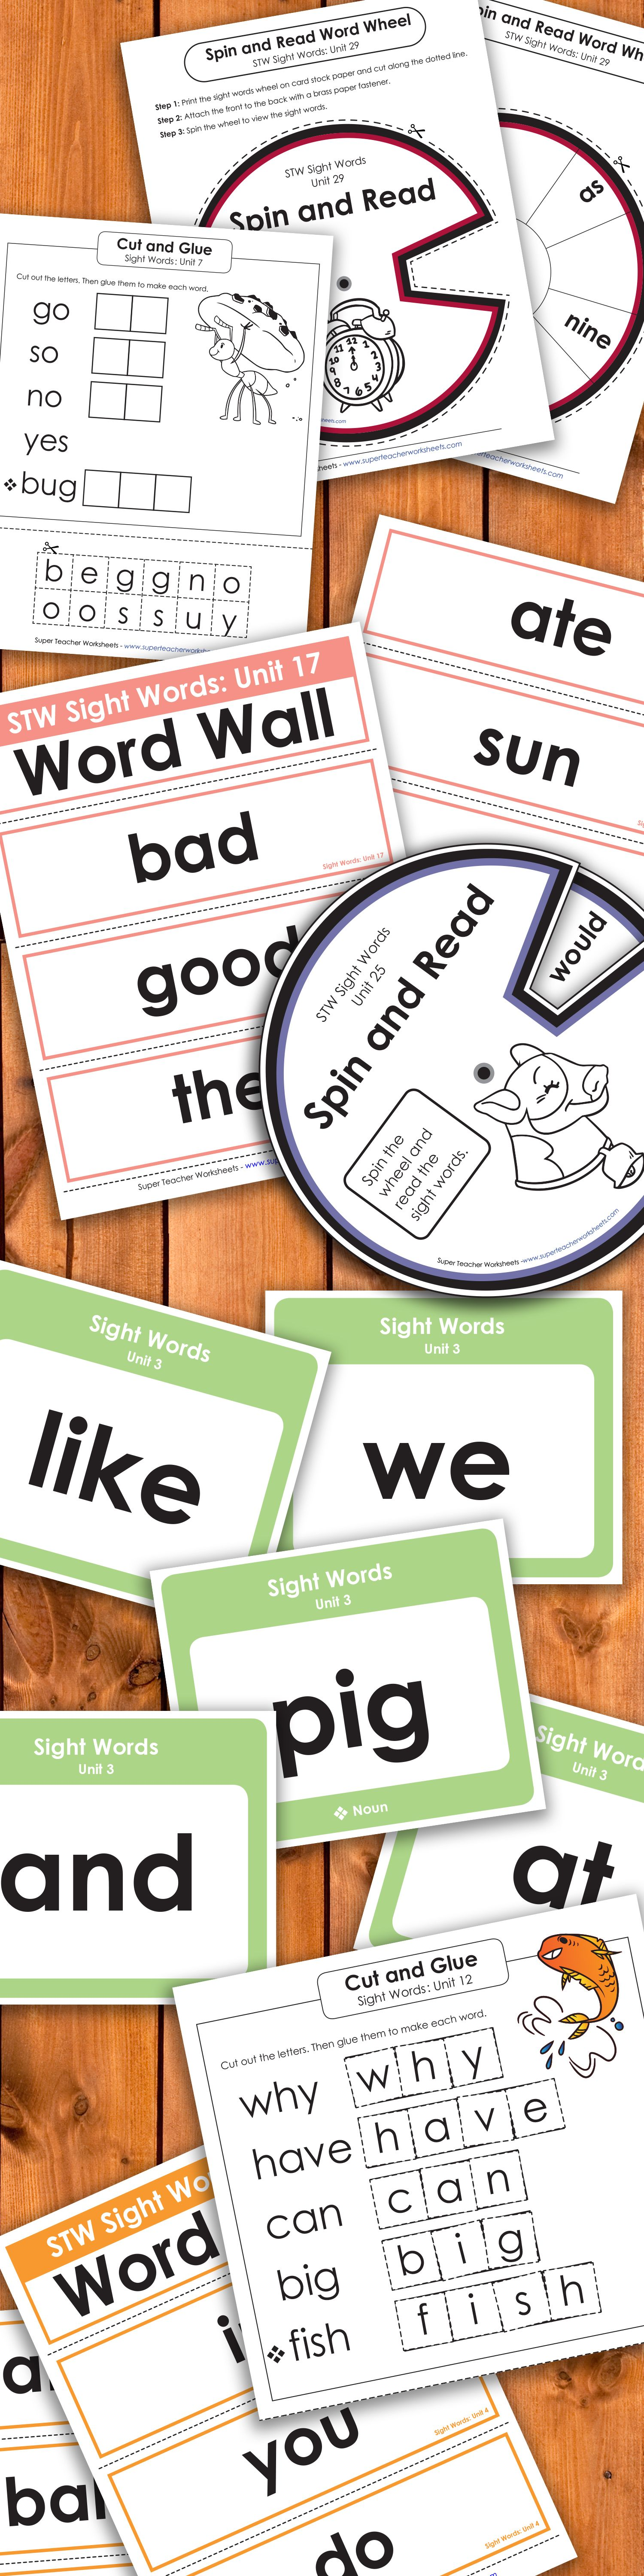 Check Out Our Extensive Sightwords Collection On